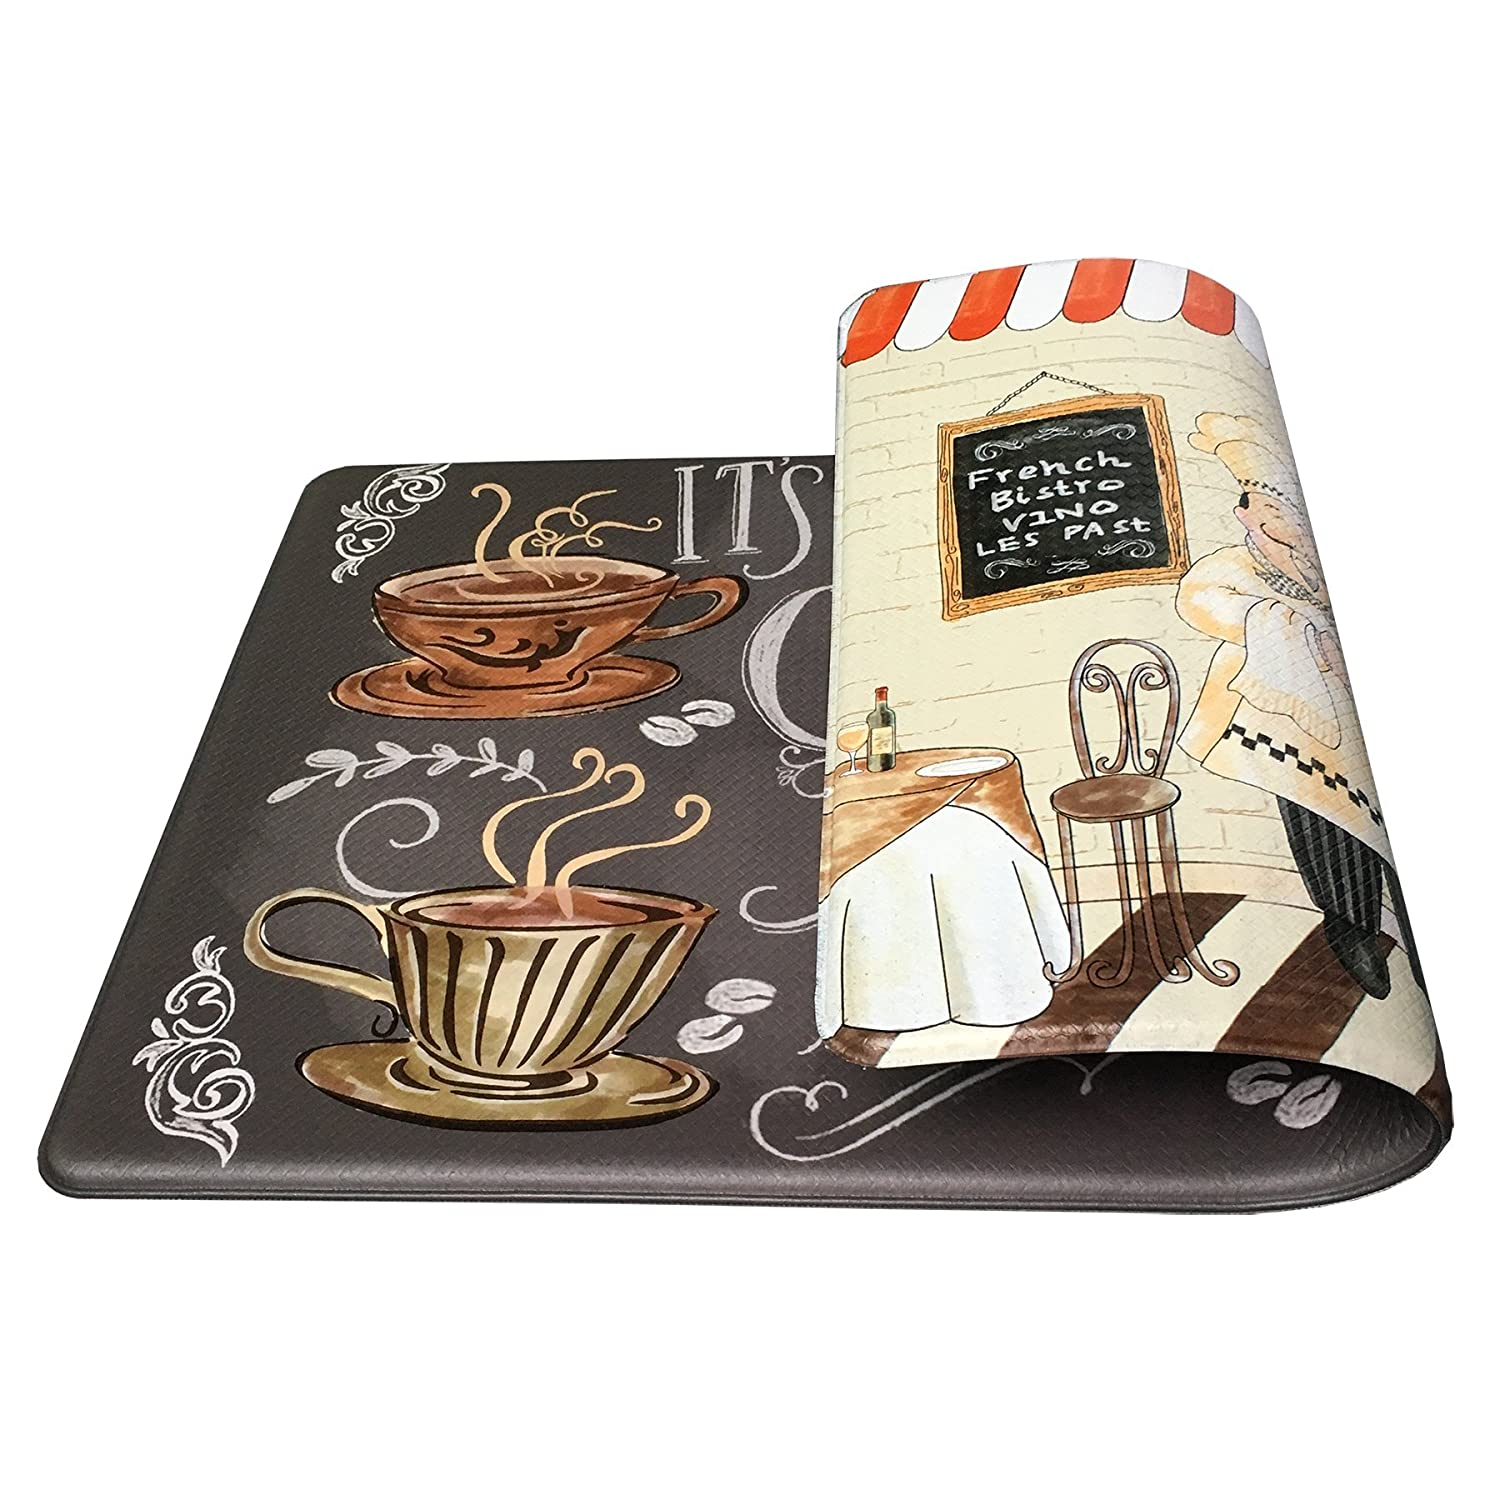 Amazon.com: Art3d Premium Double Sided Anti Fatigue Chef Rug, Anti Fatigue  Comfort Mat. Multi Purpose Decorative Standing Mat For The Kitchen,  Bathroom, ...